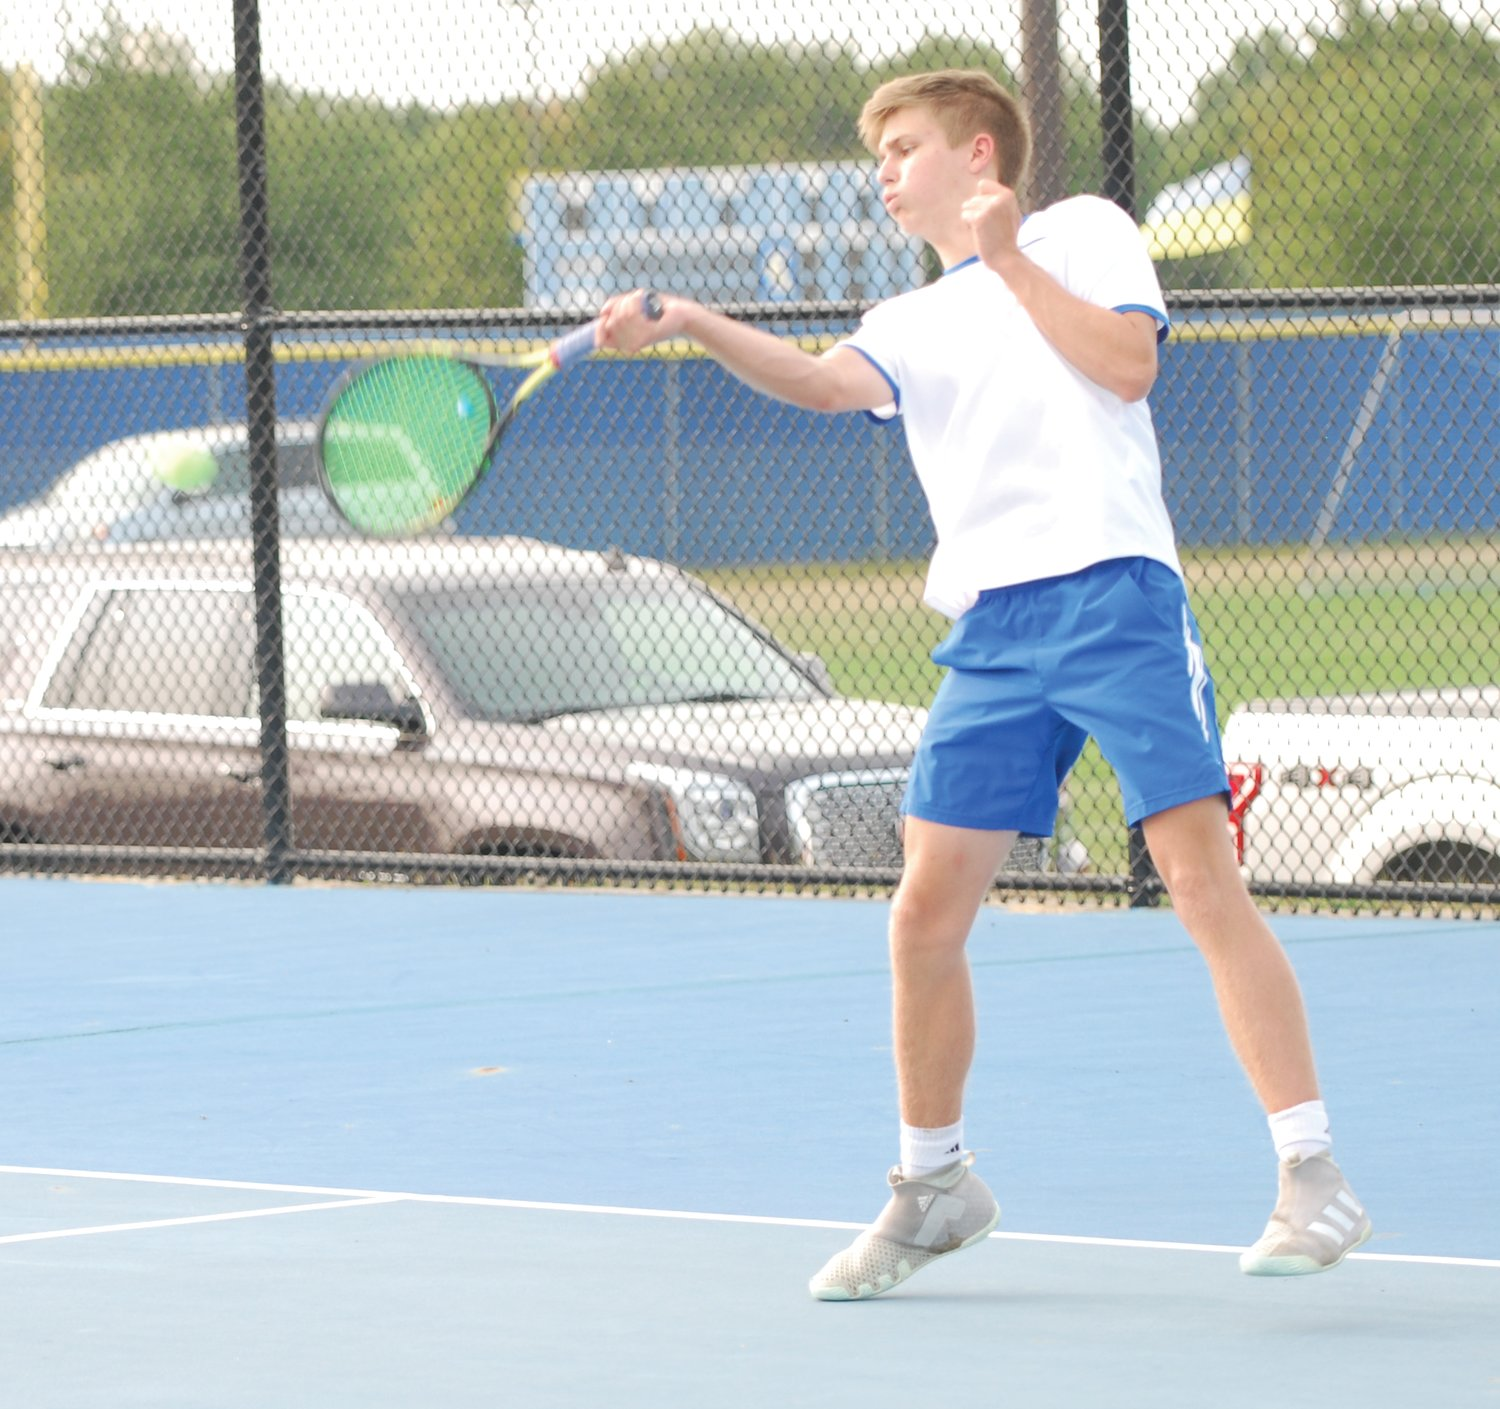 Crawfordsville's Thatcher Gambrel defeated Hunter Kashon 6-0, 6-0 at No. 2 singles on Monday.